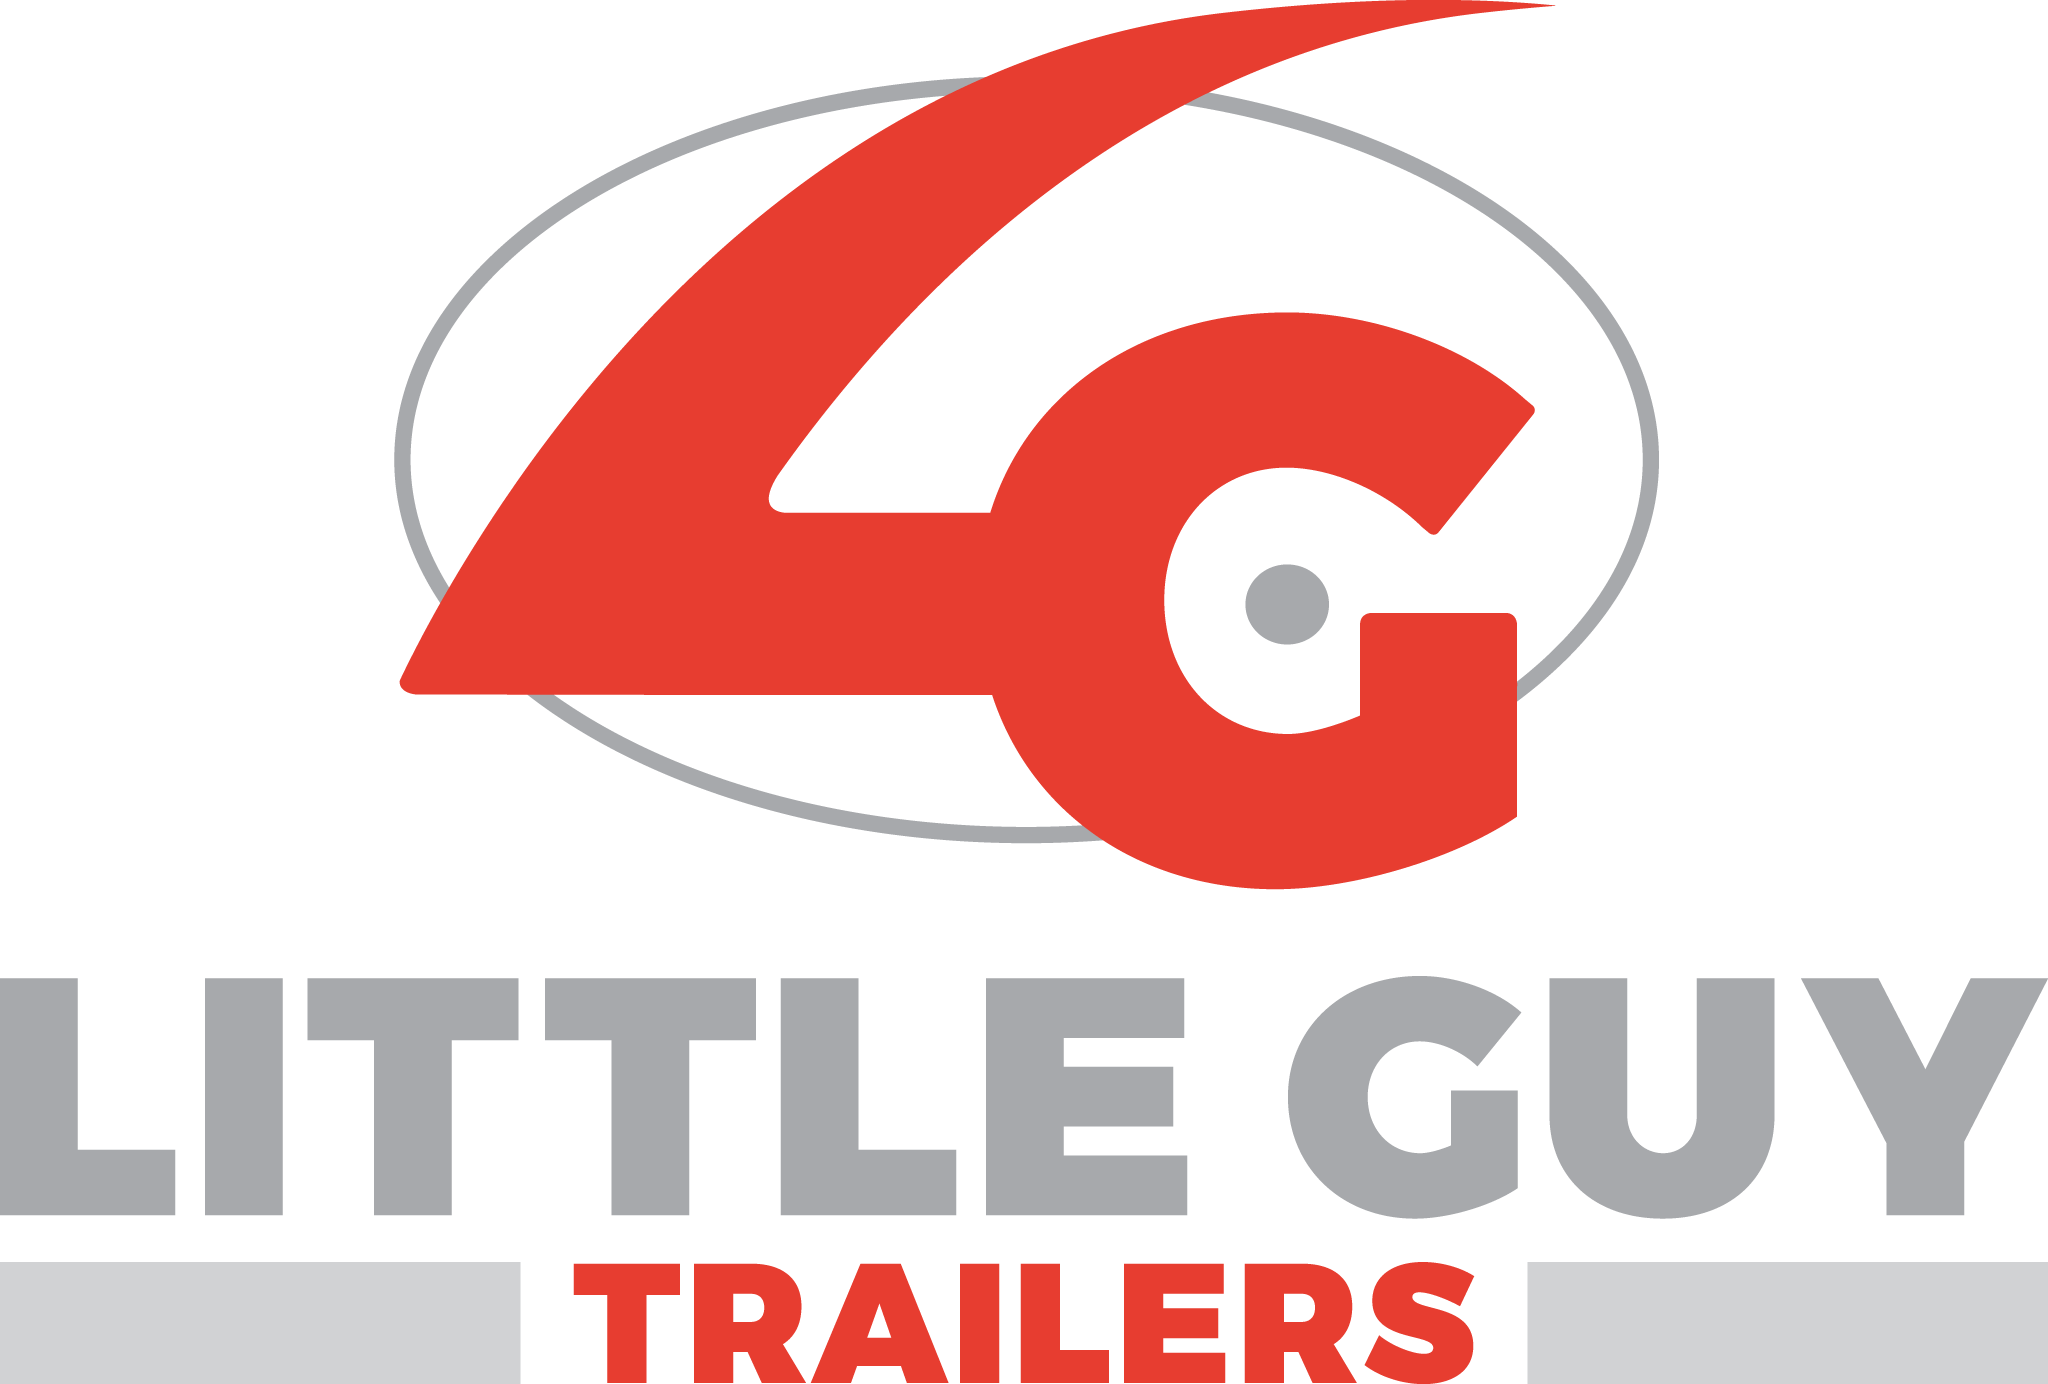 LITTLE GUY MAX Teardrop Trailer Logo